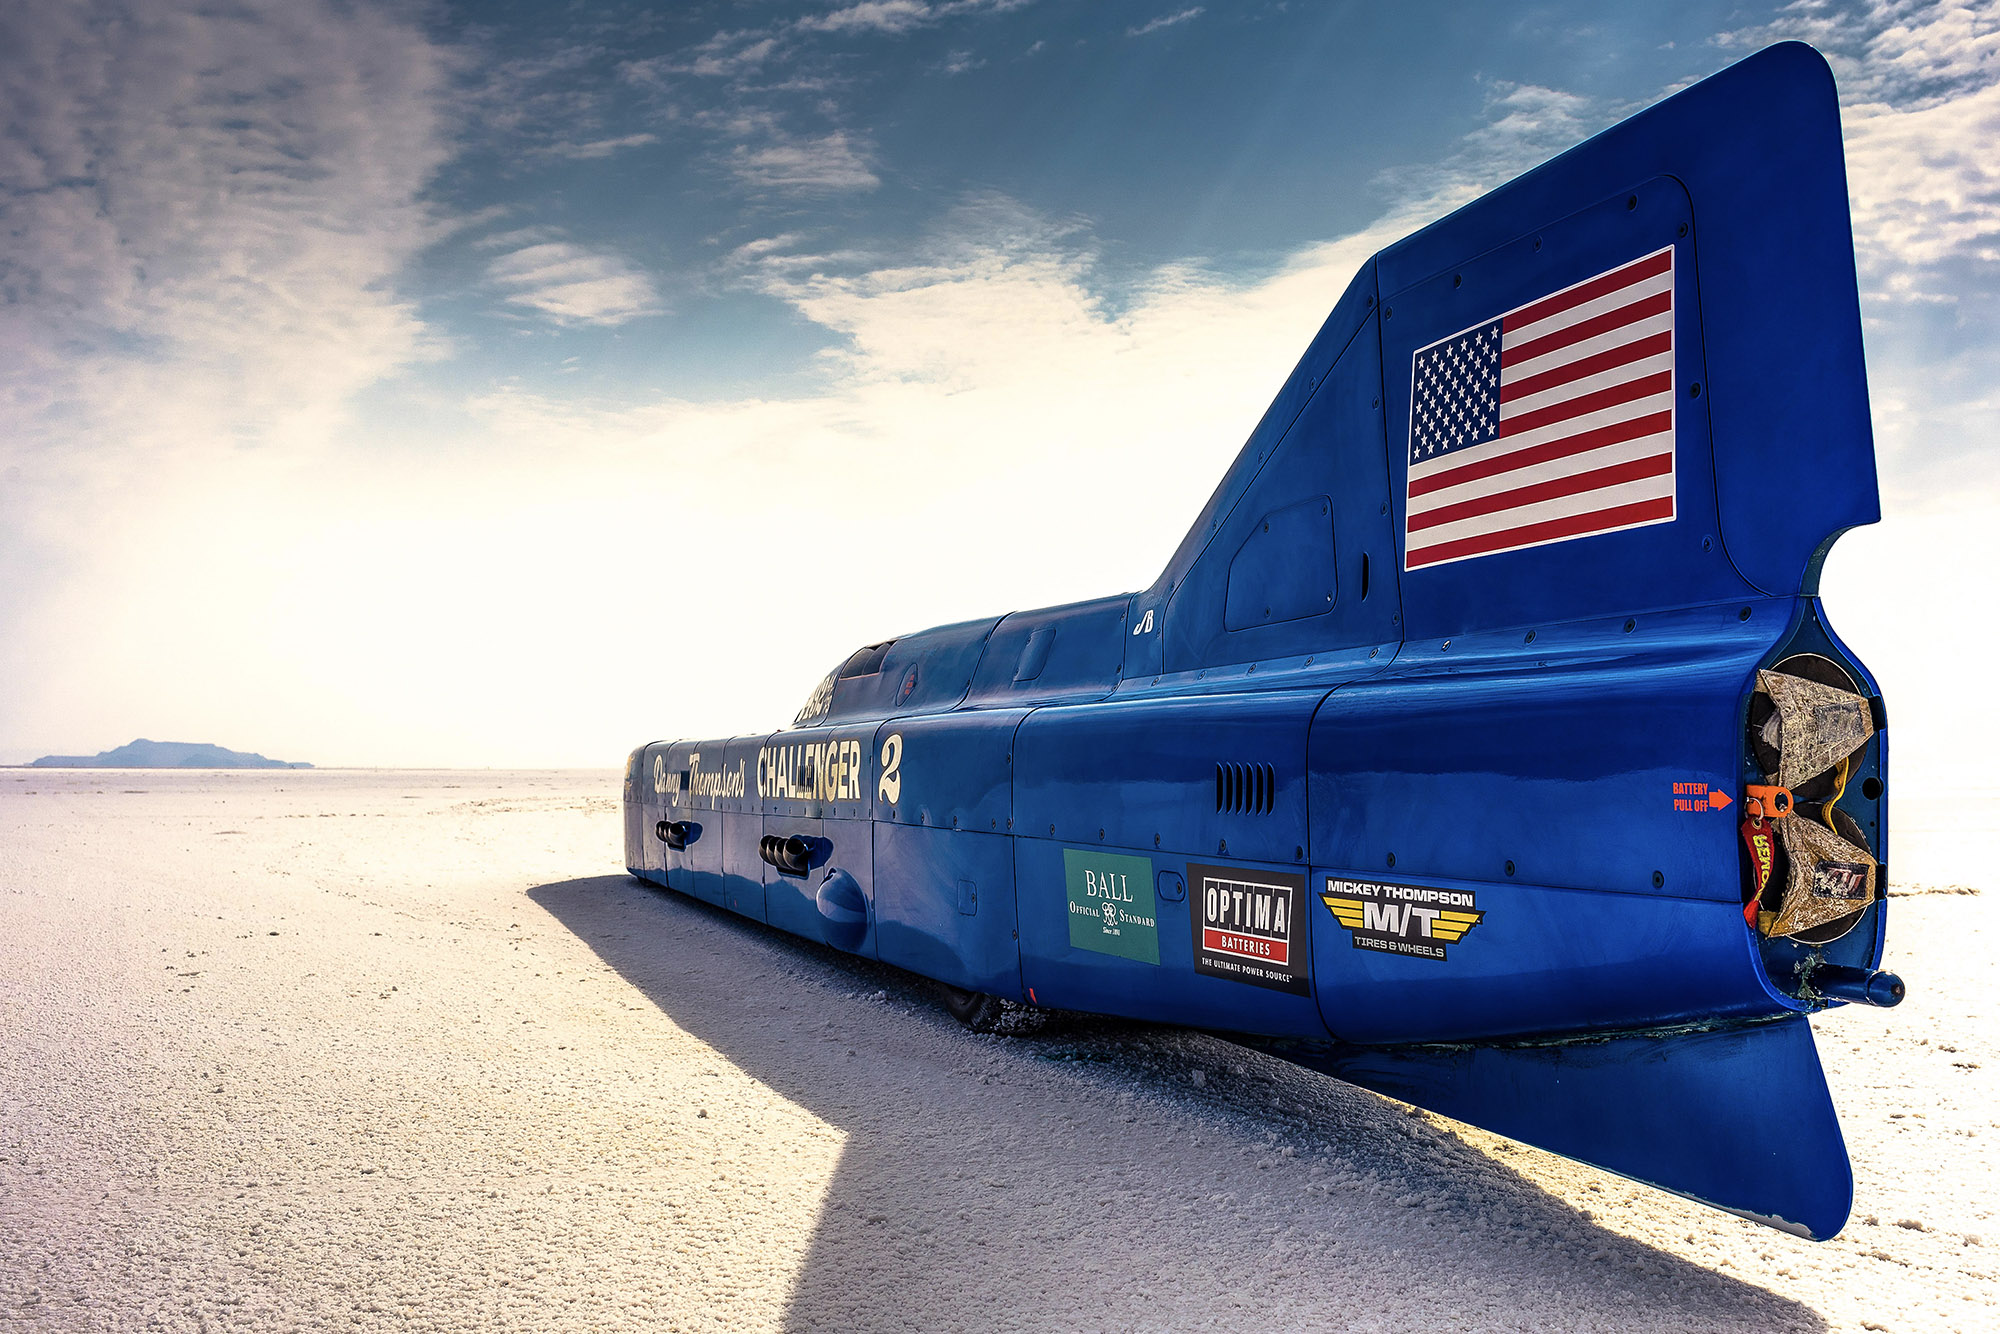 Rear view of the Challenger 2 land speed record car